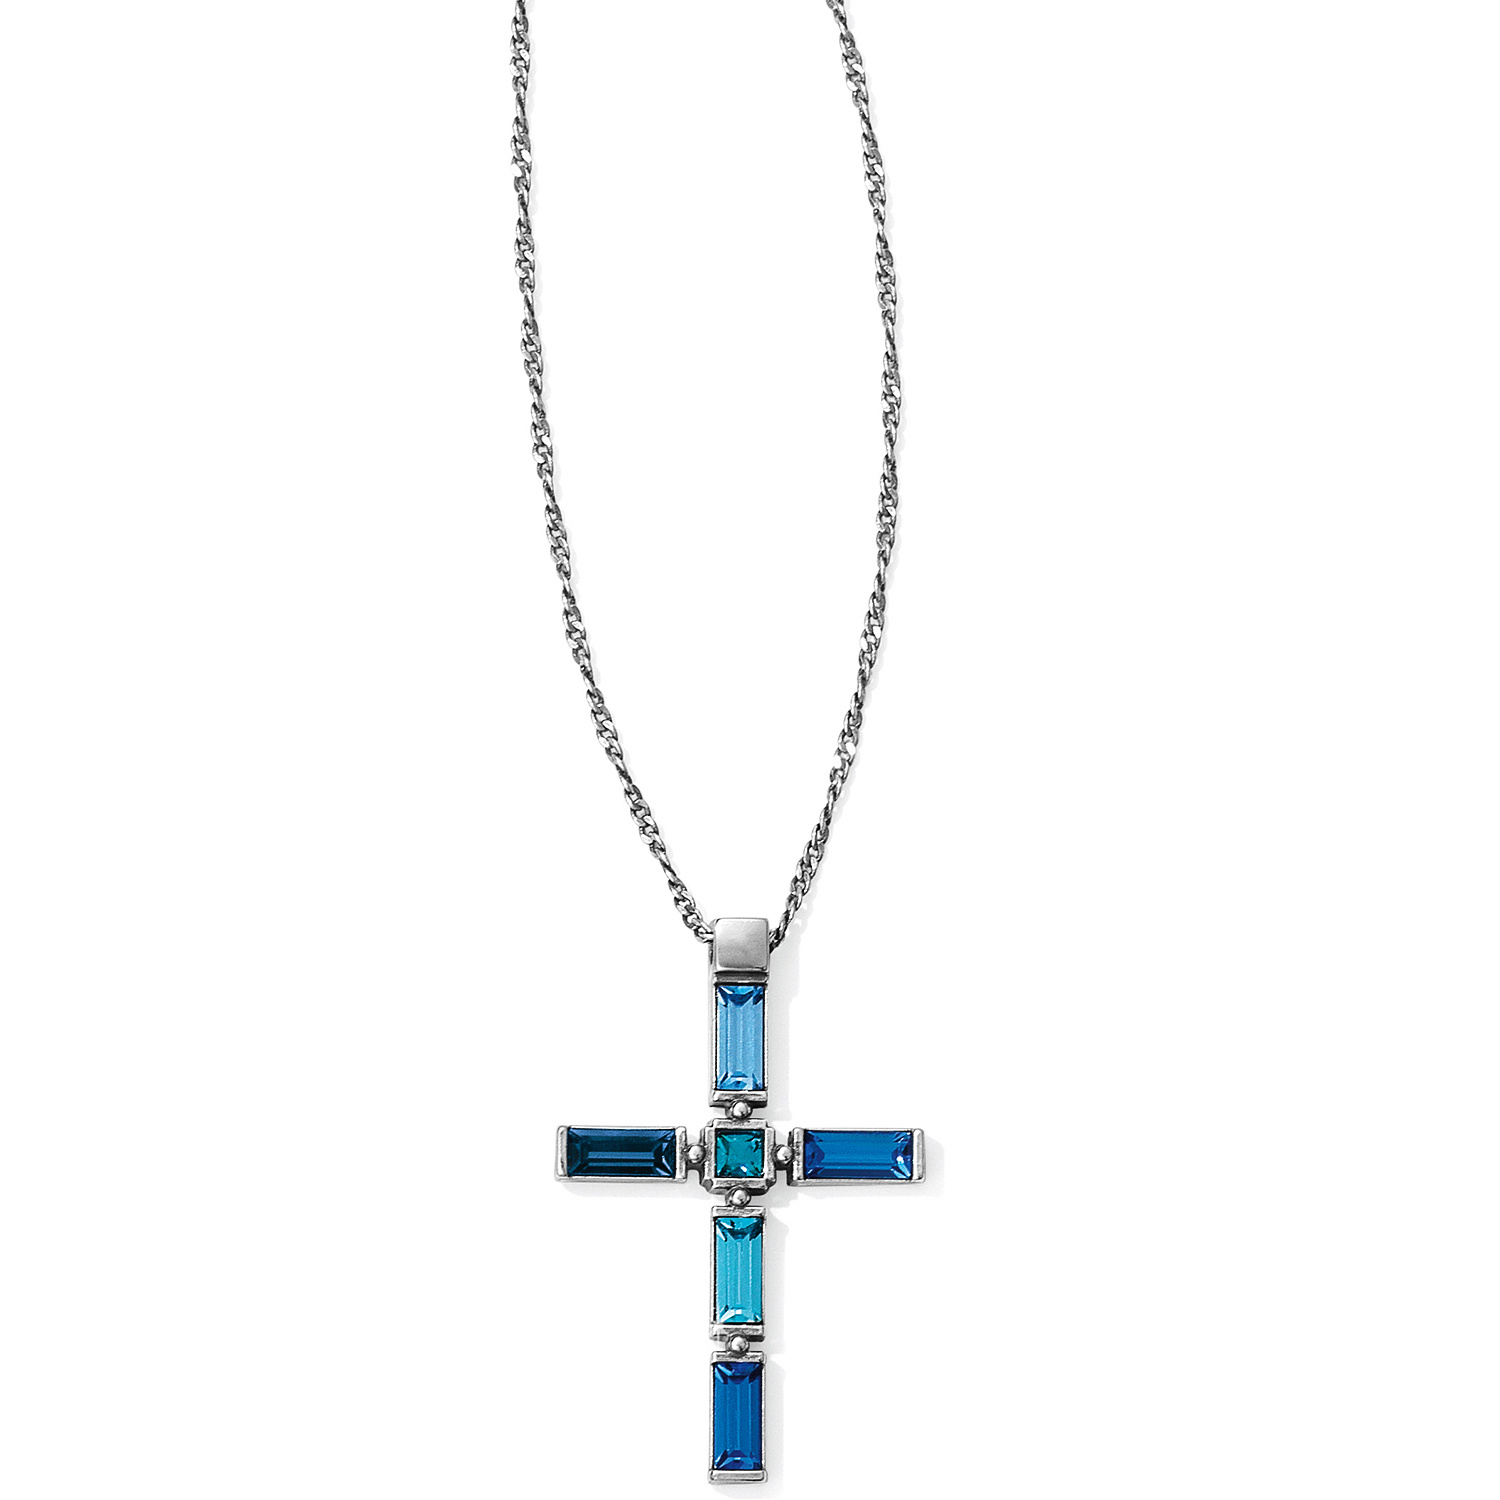 Gifts of faith brighton collectibles moderna moderna cross necklace biocorpaavc Images